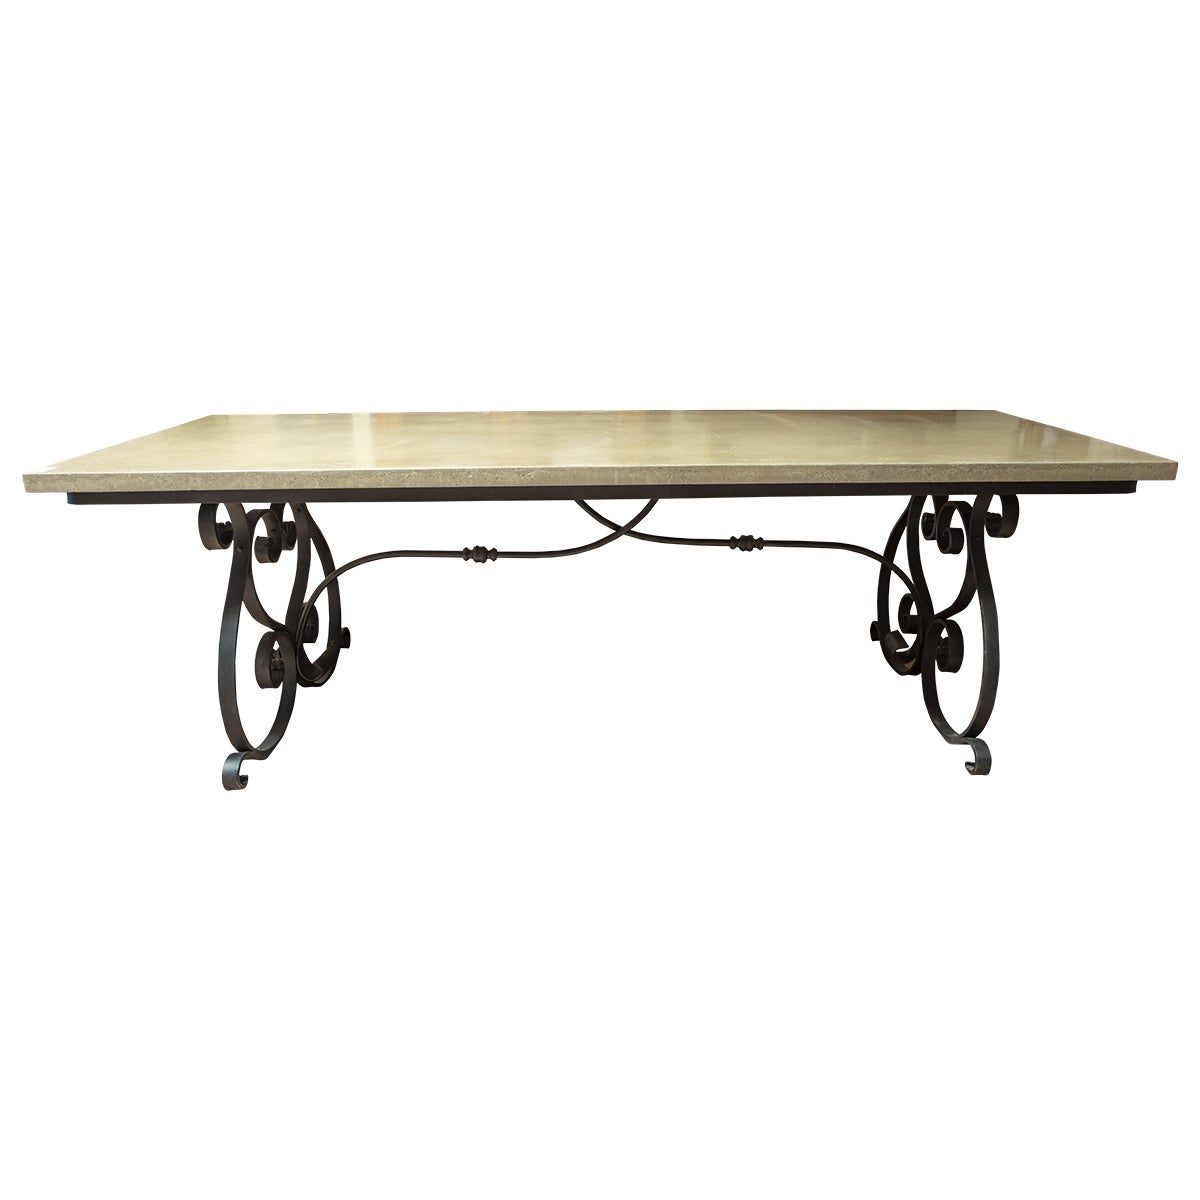 French 19th Century Iron Table Base with Concrete Top